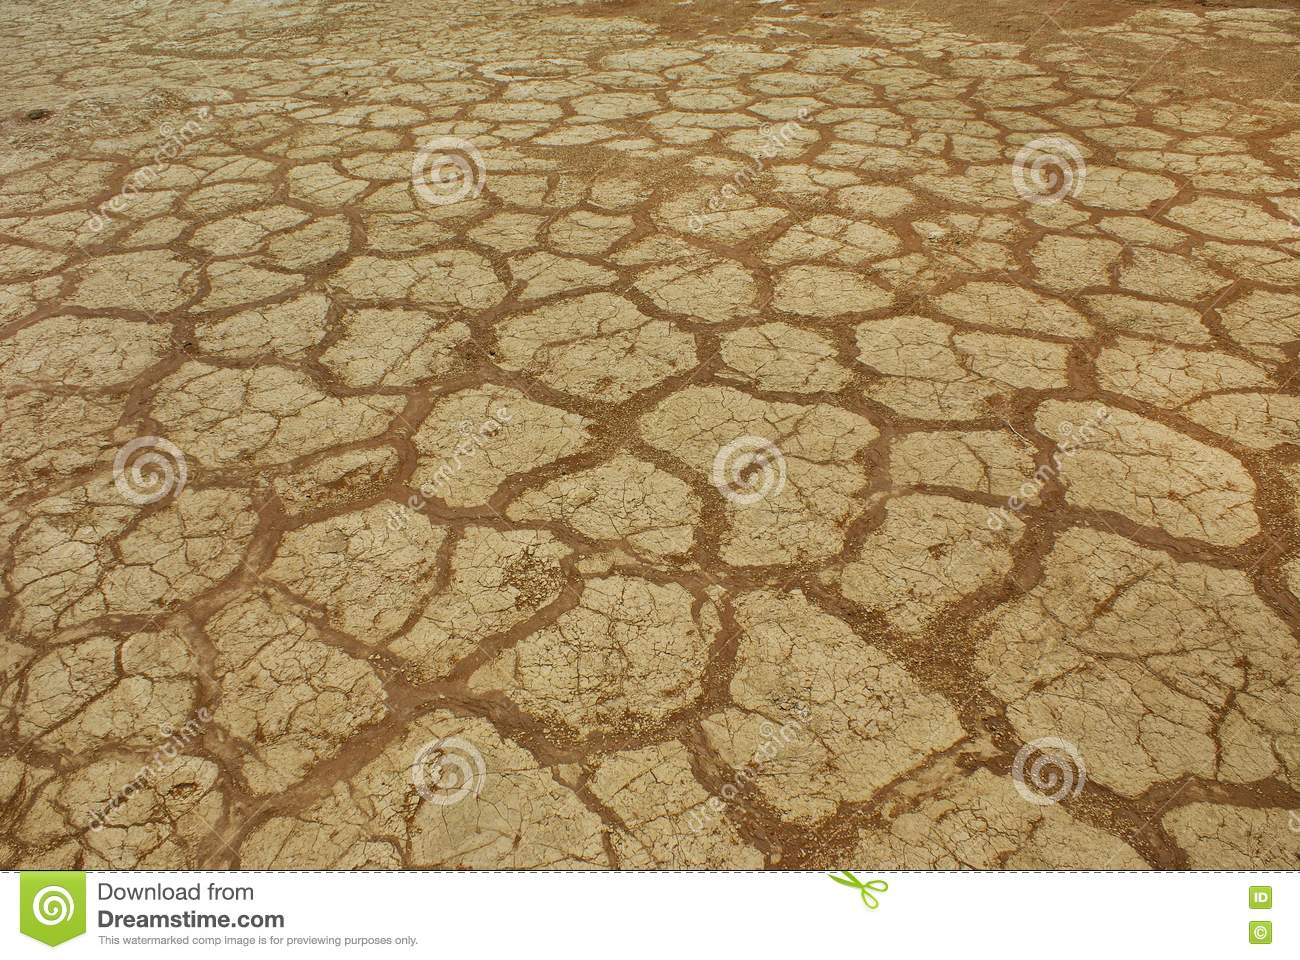 Arid Soil Royalty Free Stock Photo - Image: 17854085